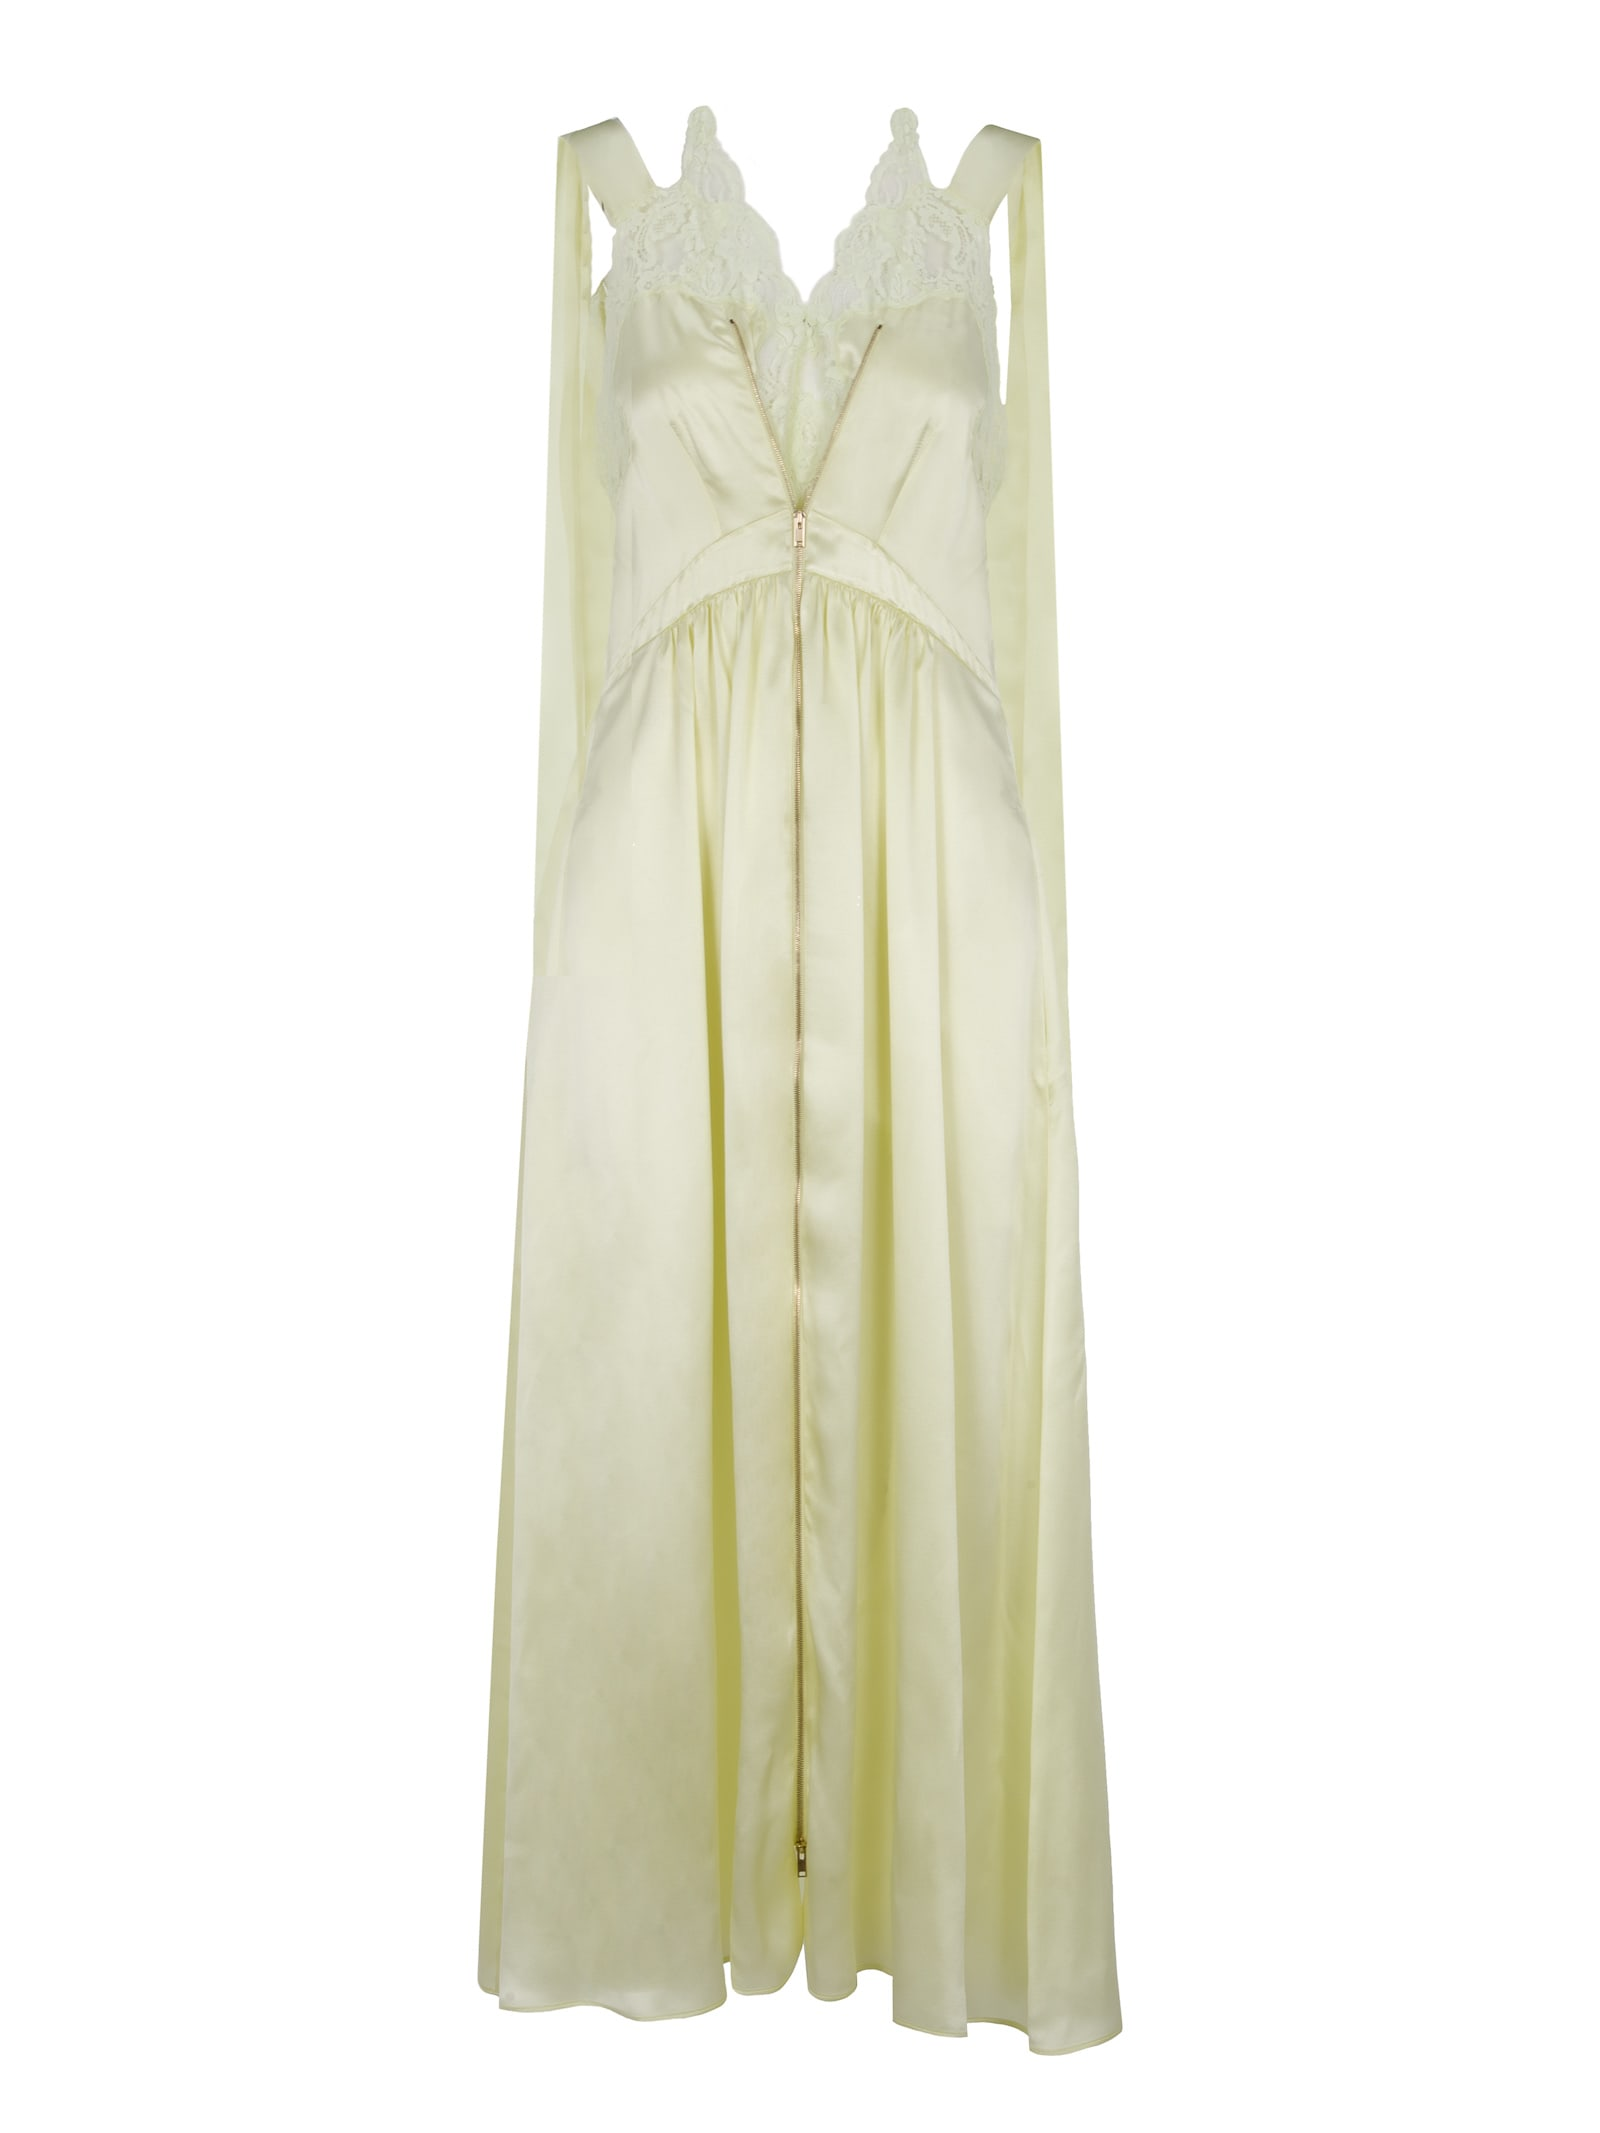 Stella Mccartney Stella Mccartney Satin Dress